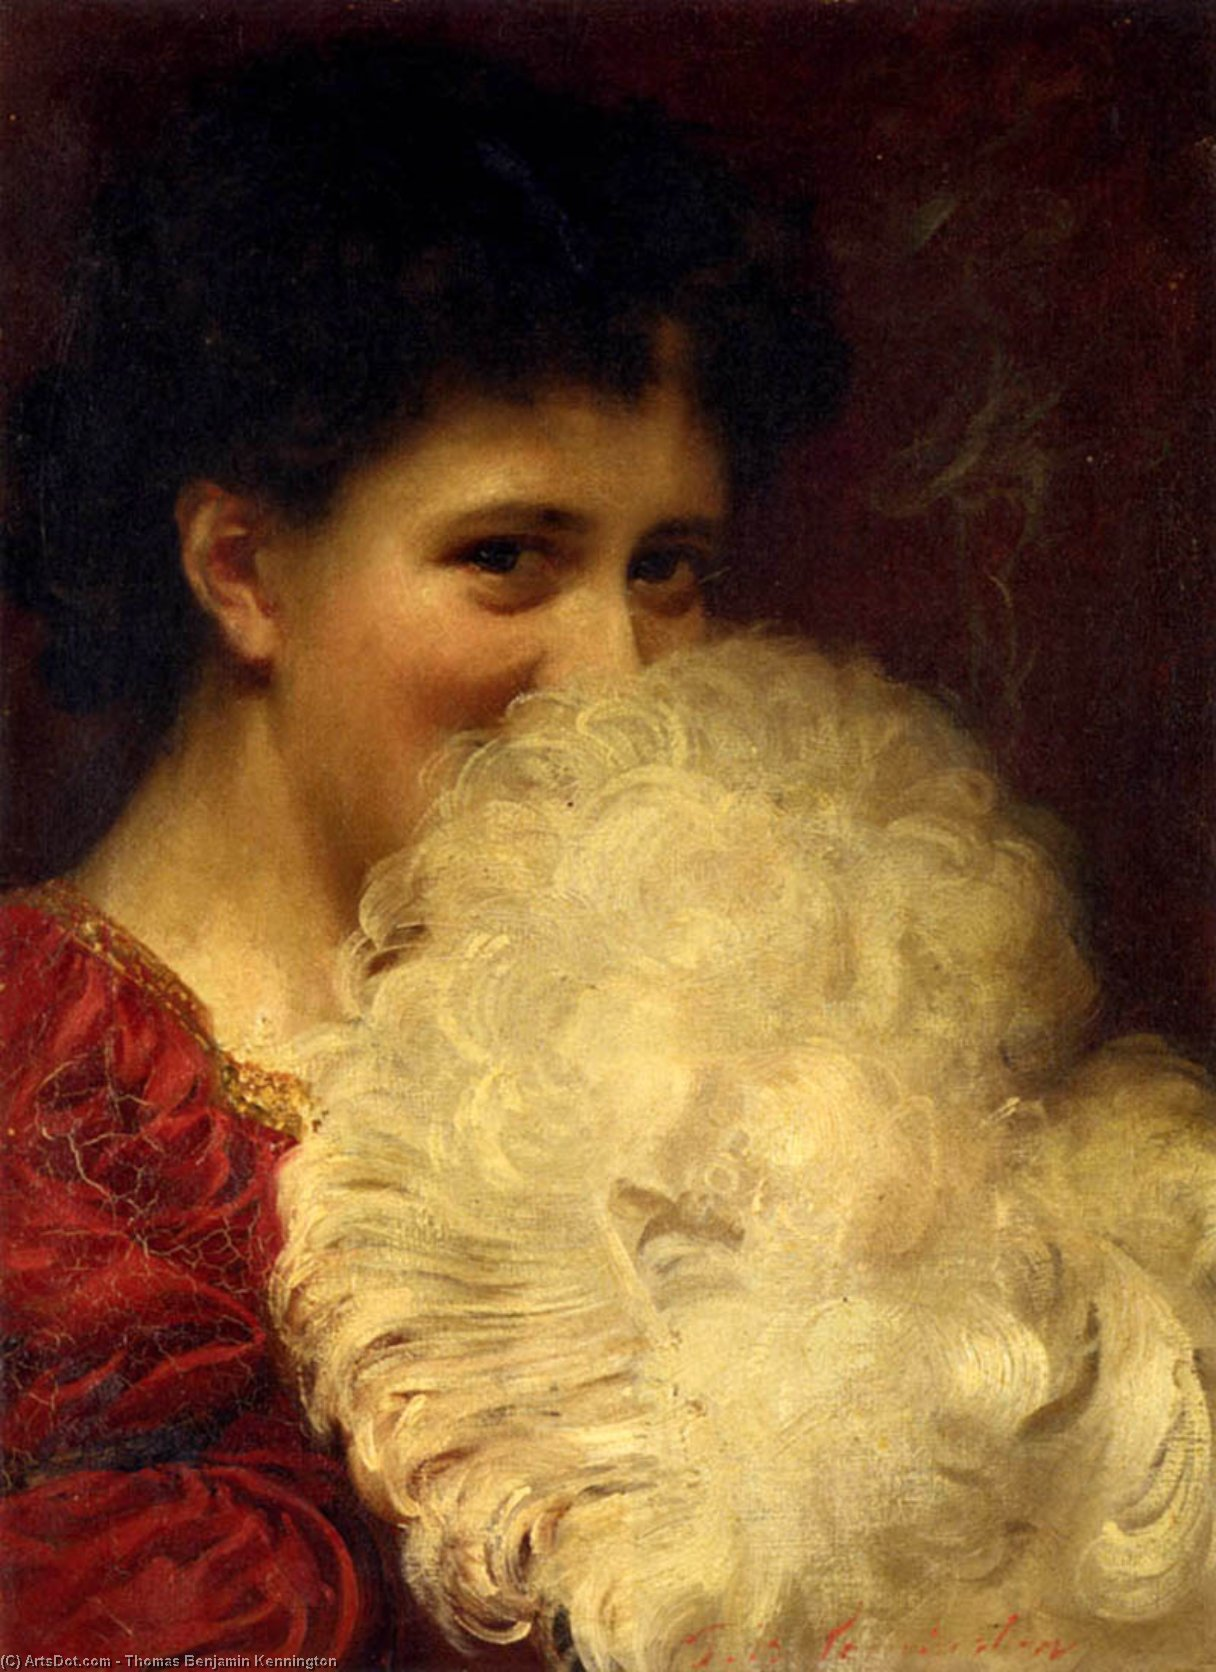 Un penacho  todaclasede  Fumar  de Thomas Benjamin Kennington (1856-1916, United Kingdom)